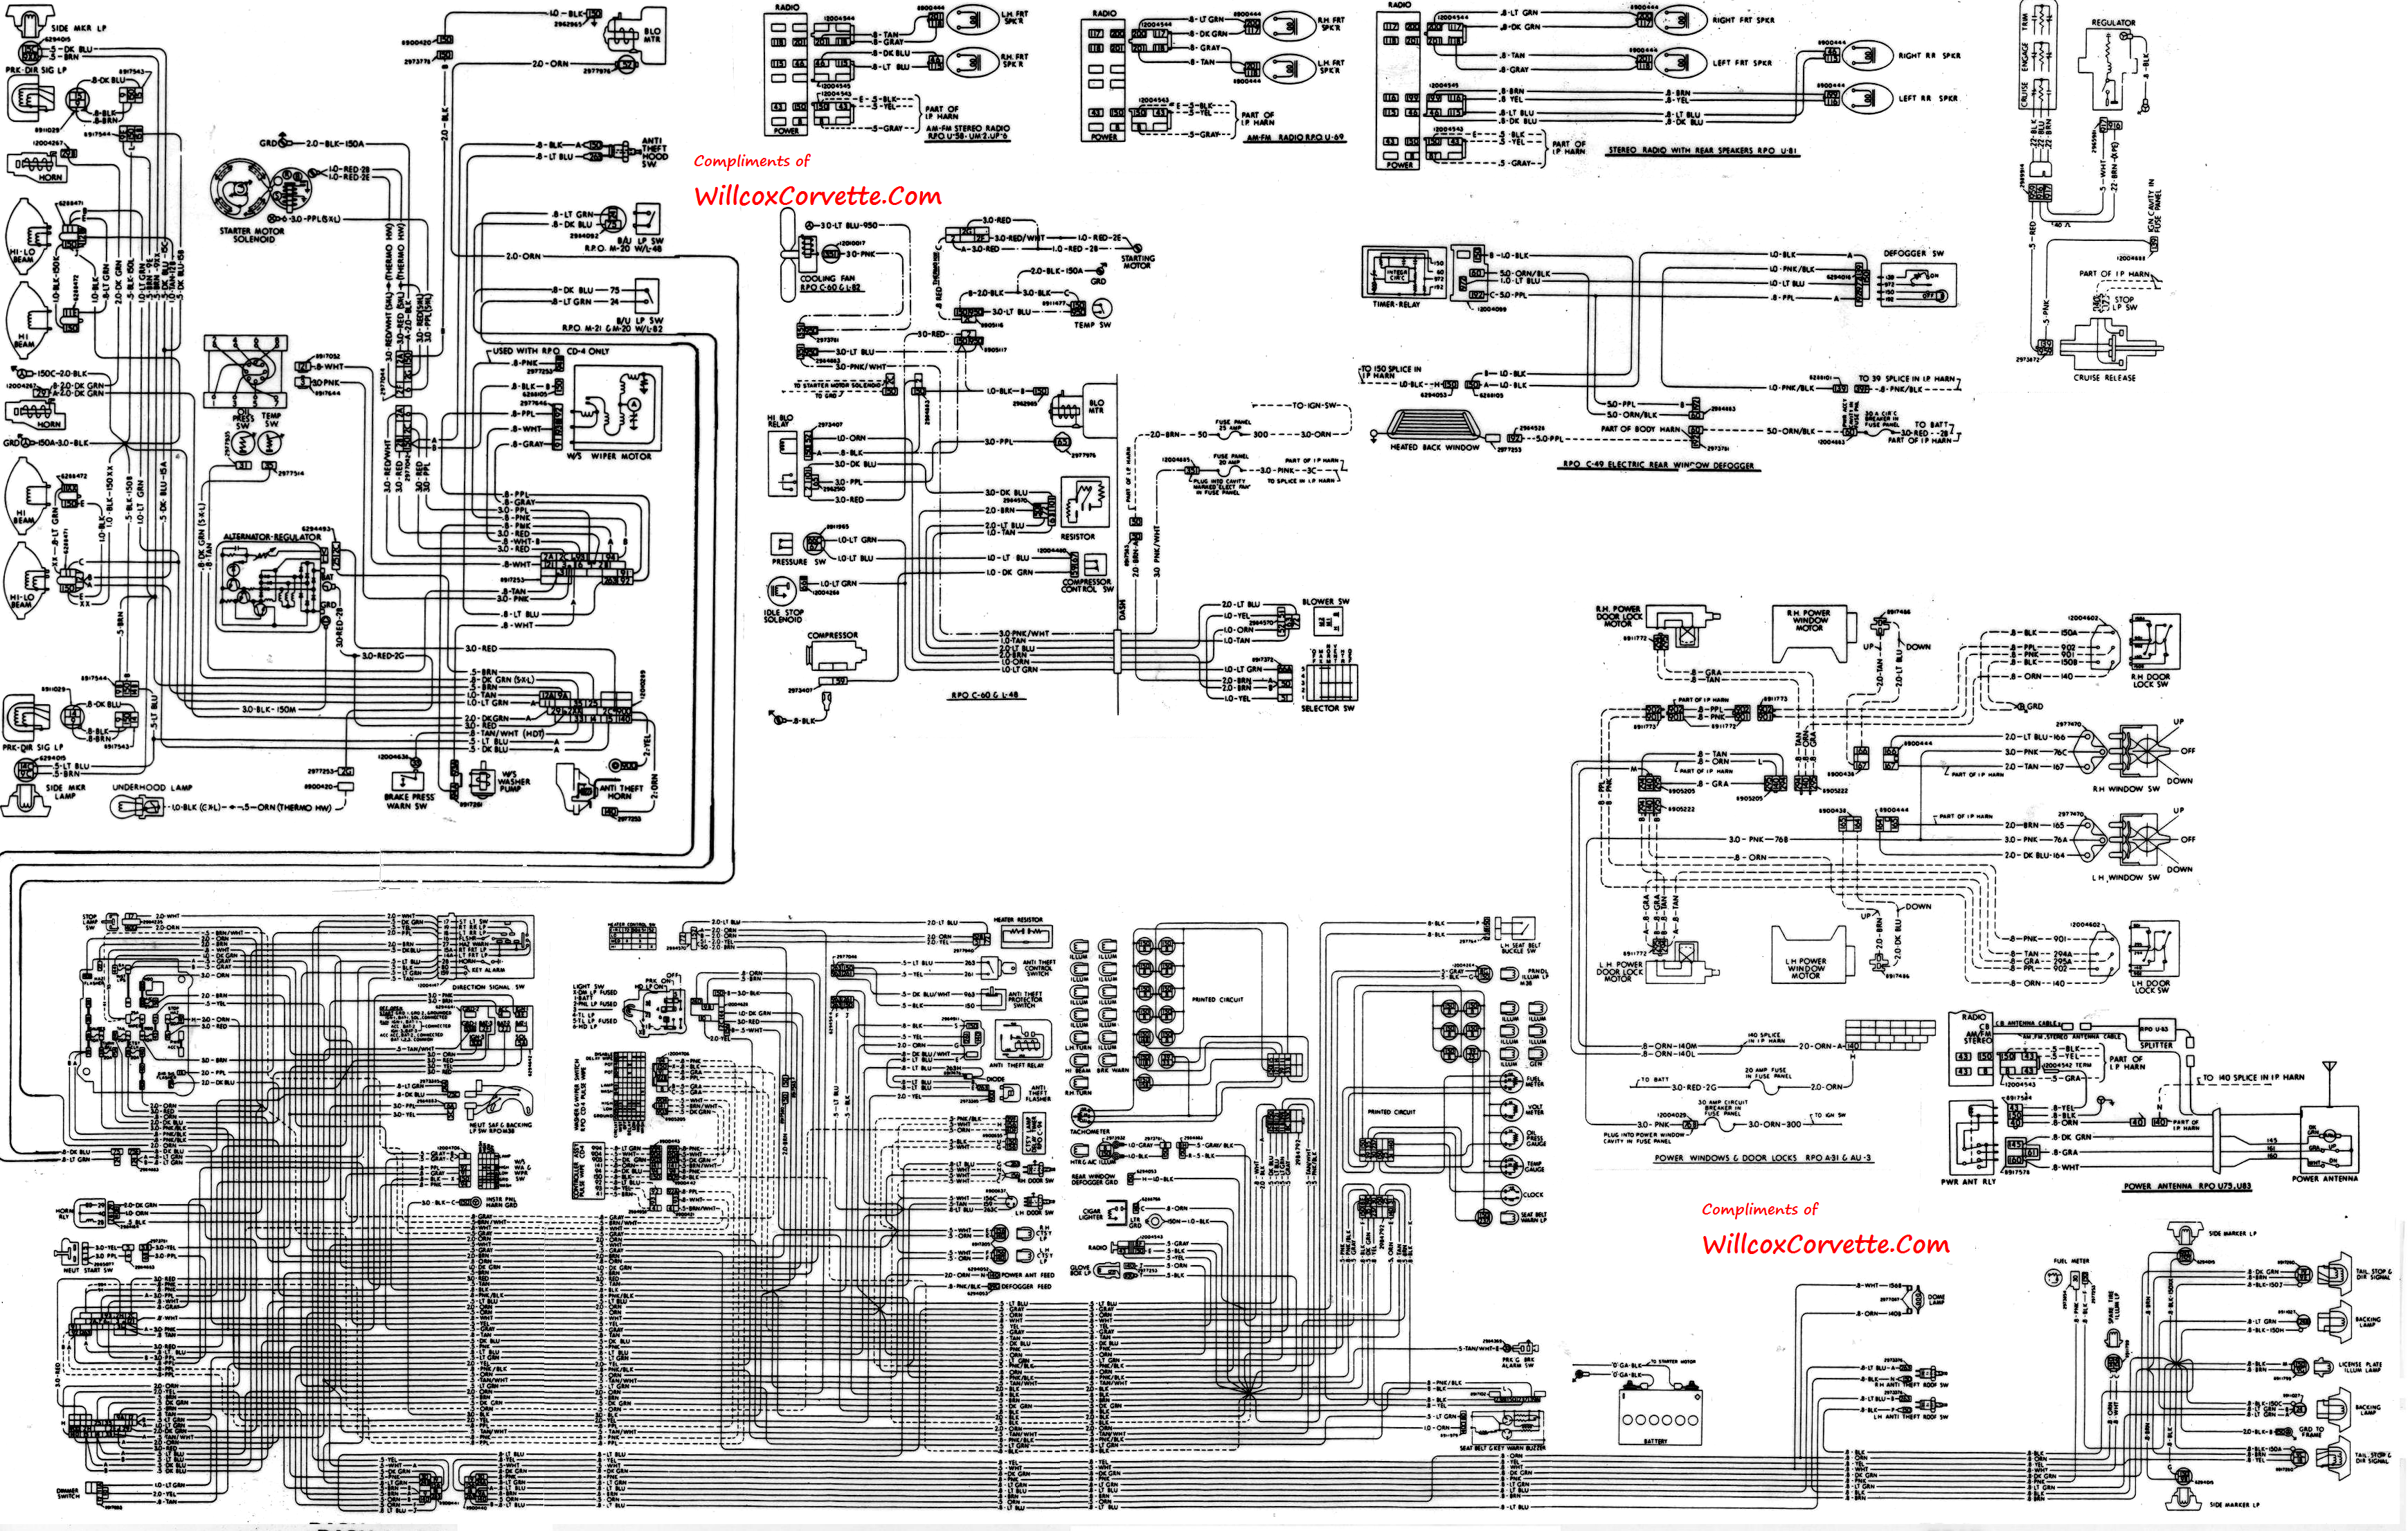 1979 corvette fuse box - page 3 - corvetteforum ... 2002 yamaha 660 grizzly wiring diagram in pdf 1979 wiring diagram in pdf